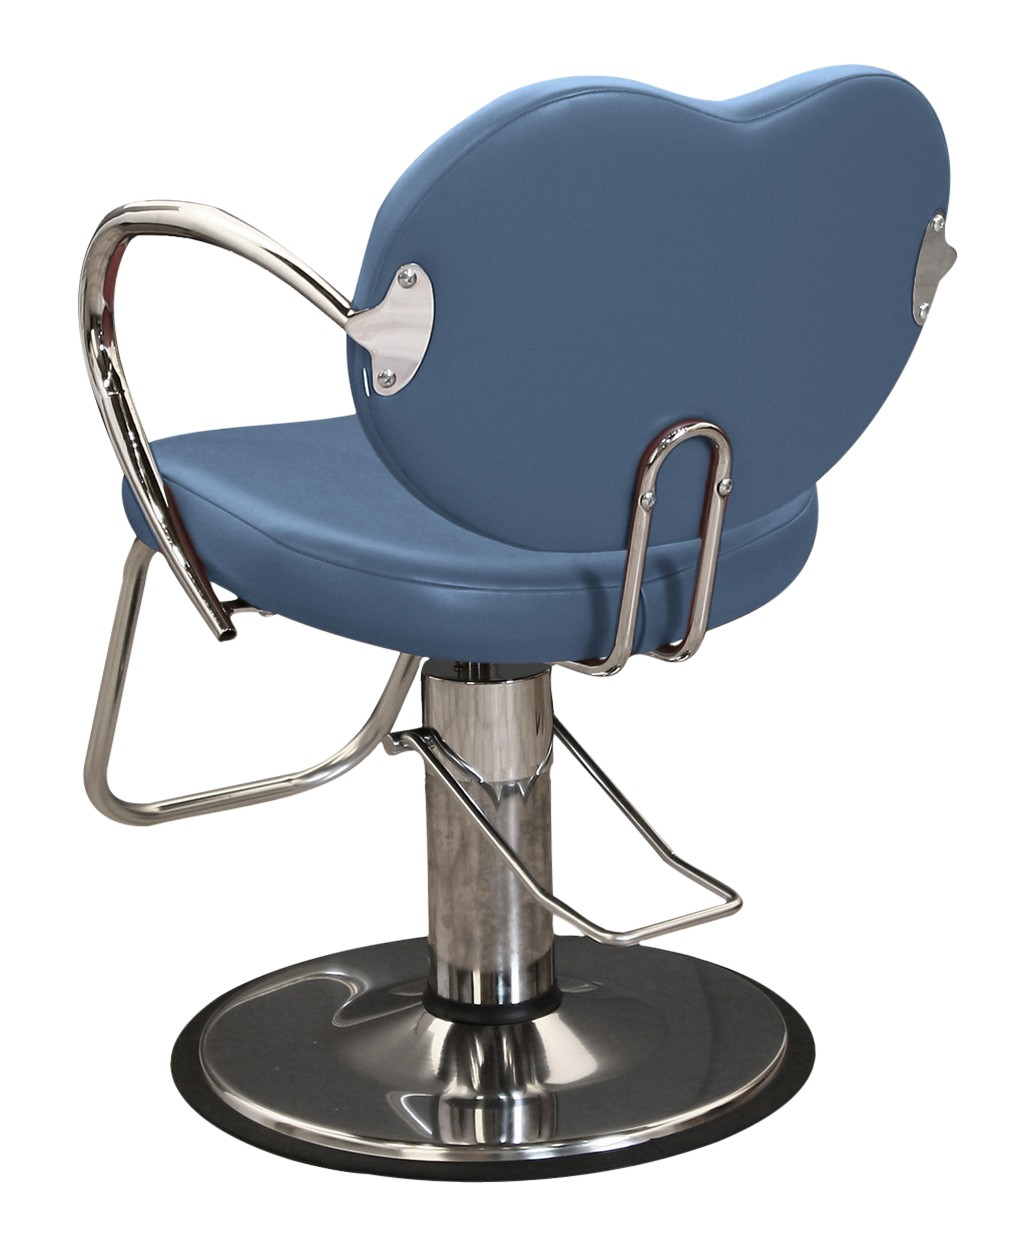 7000V Styling Chair with Enviro Base